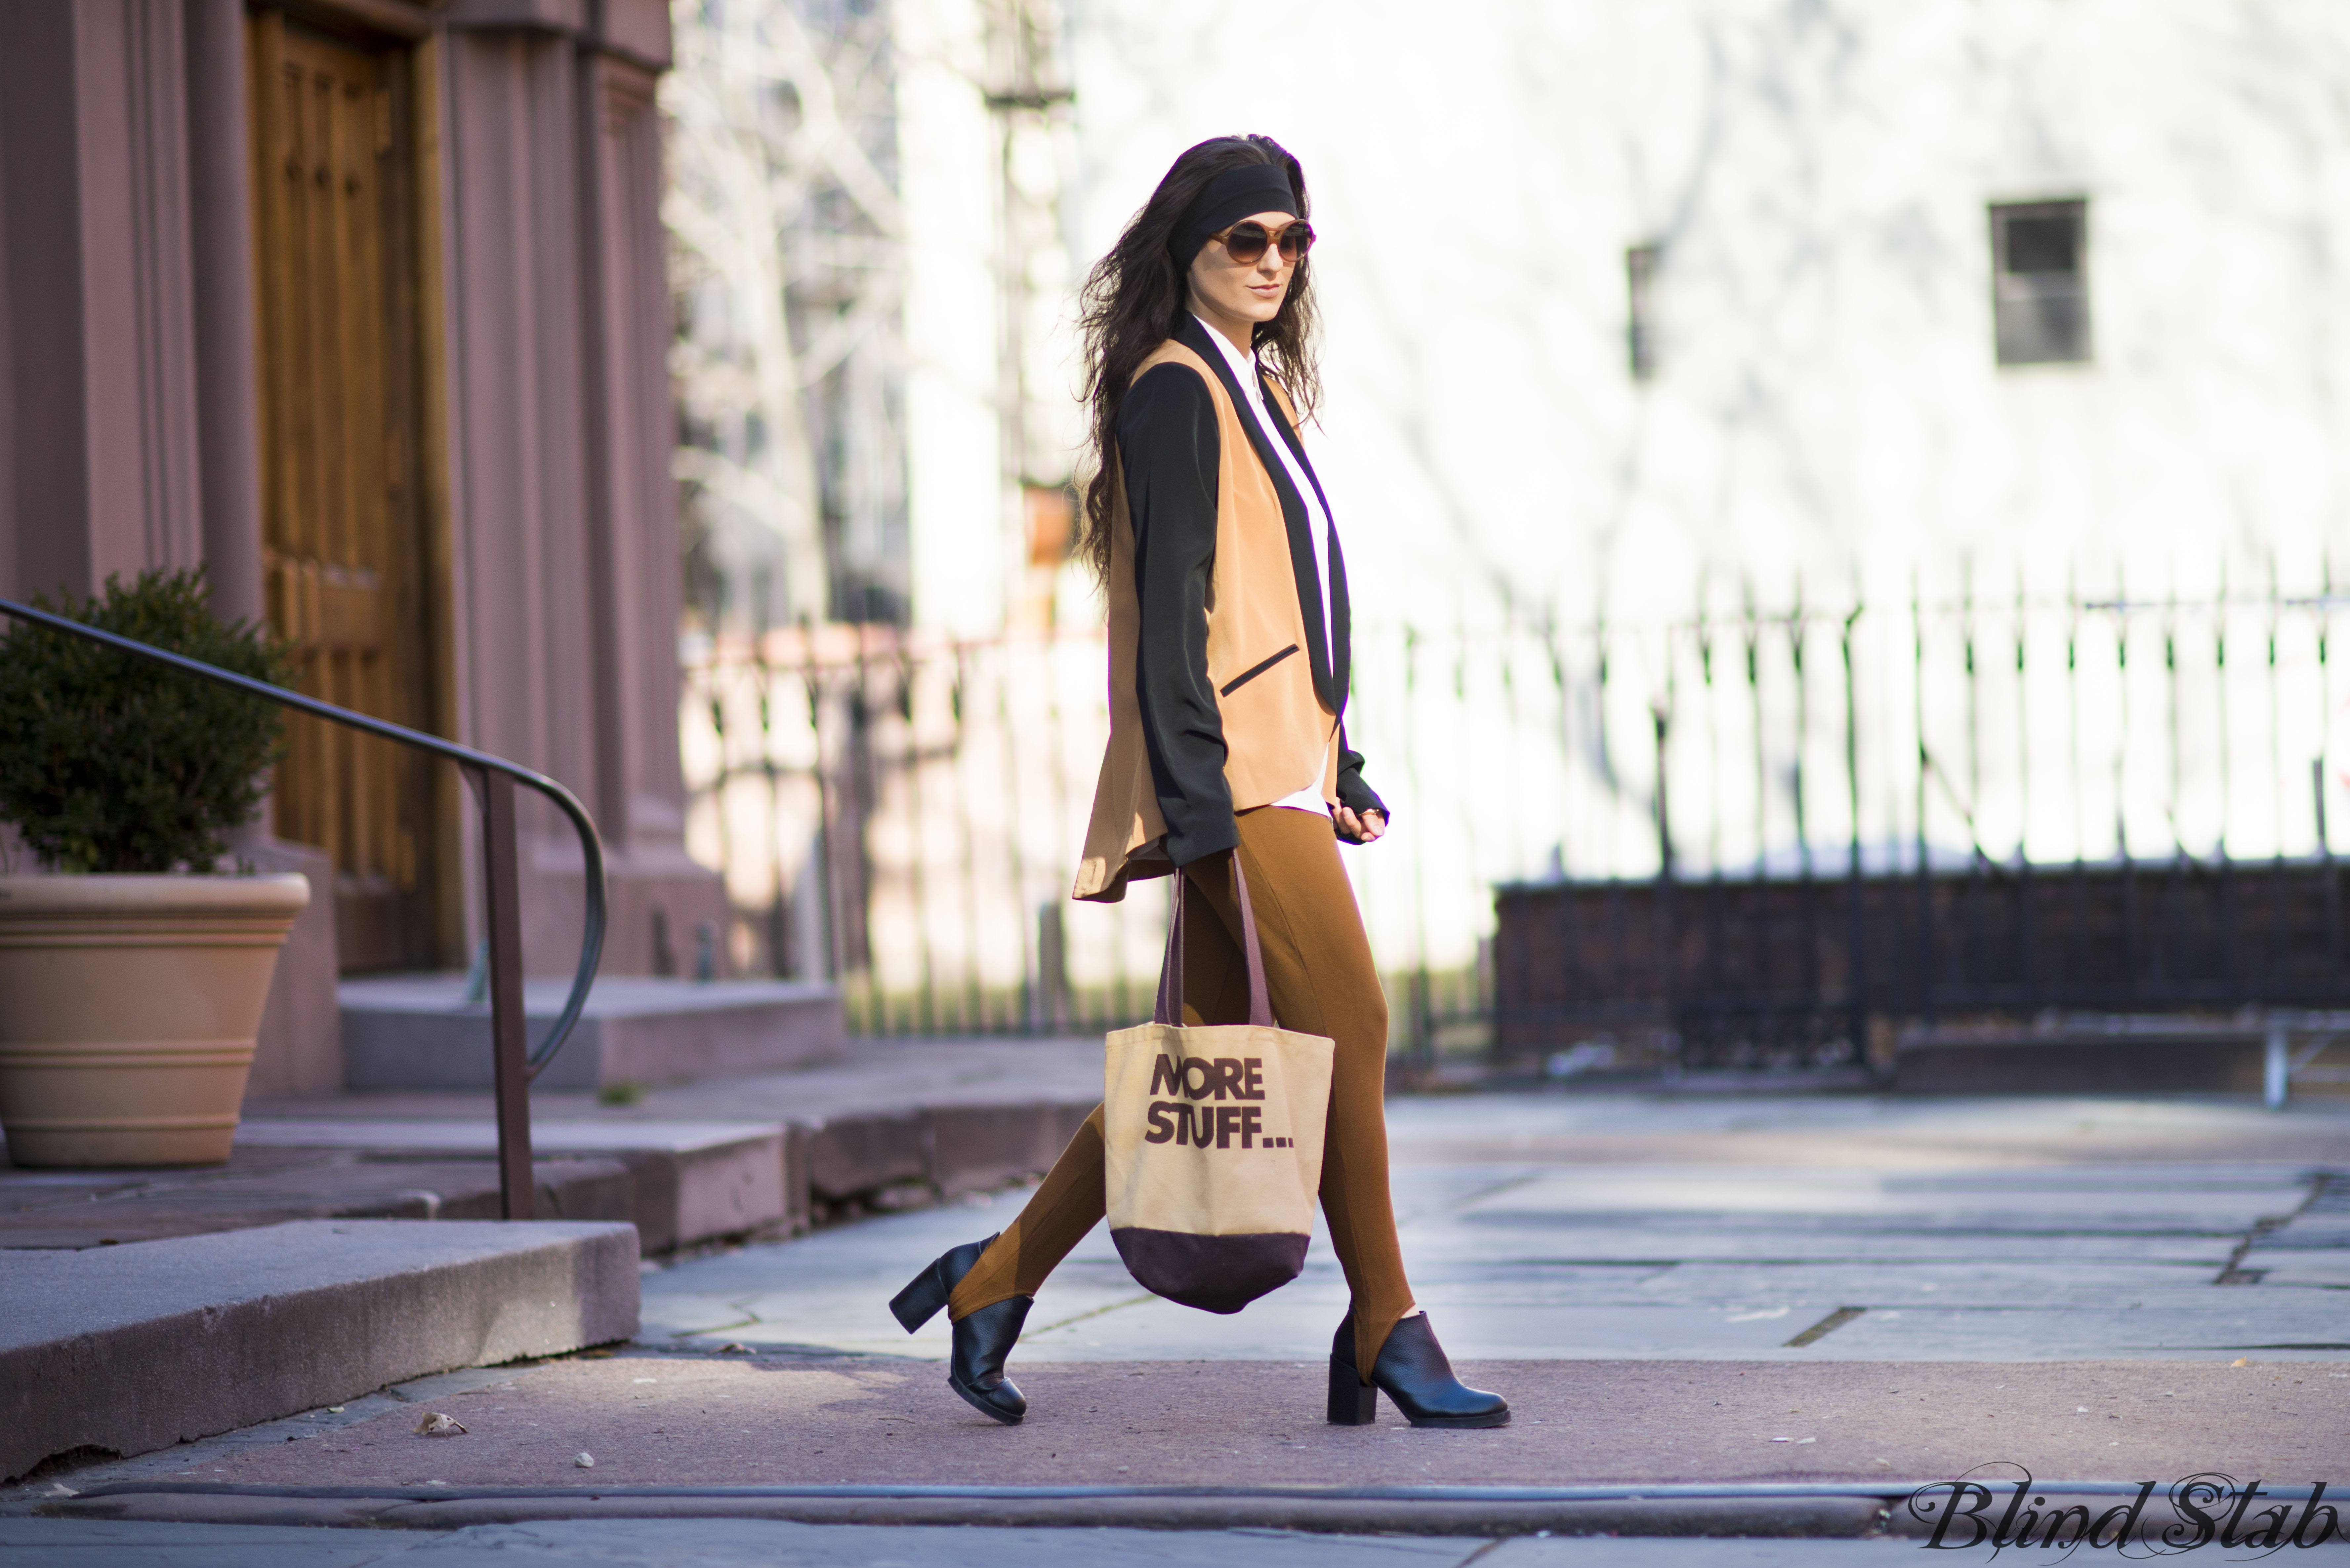 Round-Glasses-Two-Toned-Blazer-NYC-New-York-City-Street-Style